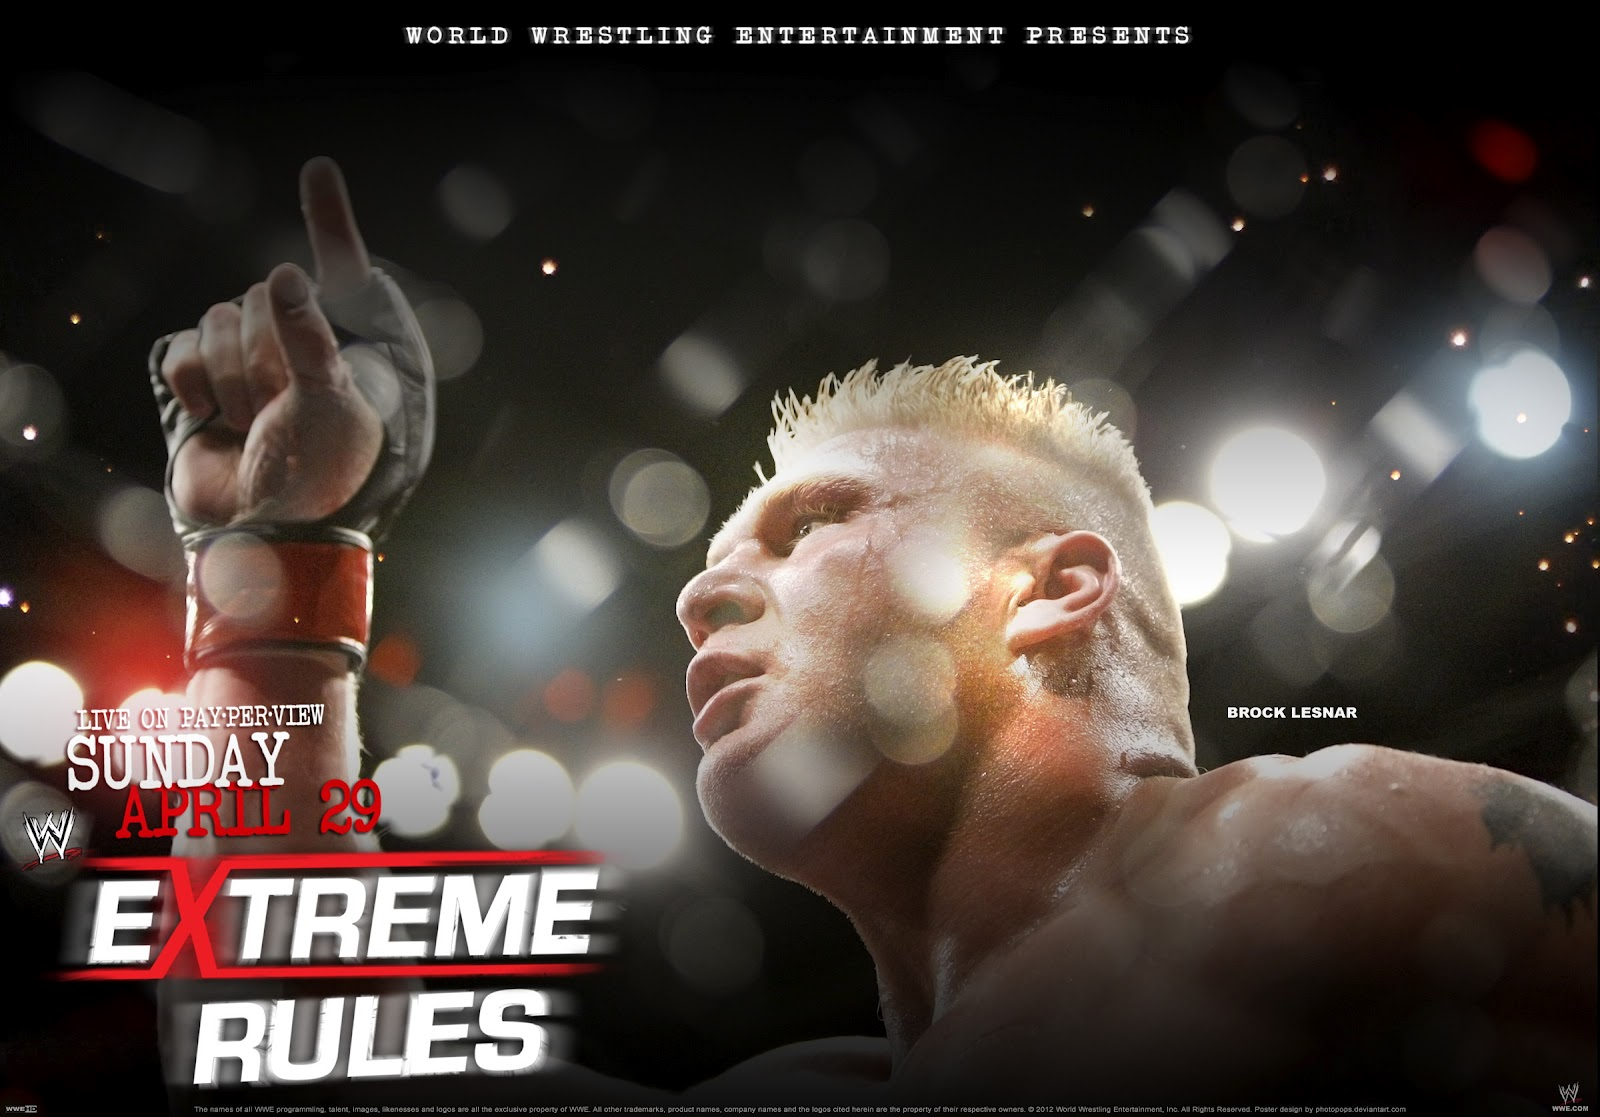 brock lesnar wallpapers brock lesnar wallpaper brock lesnar wallpaper 1600x1117